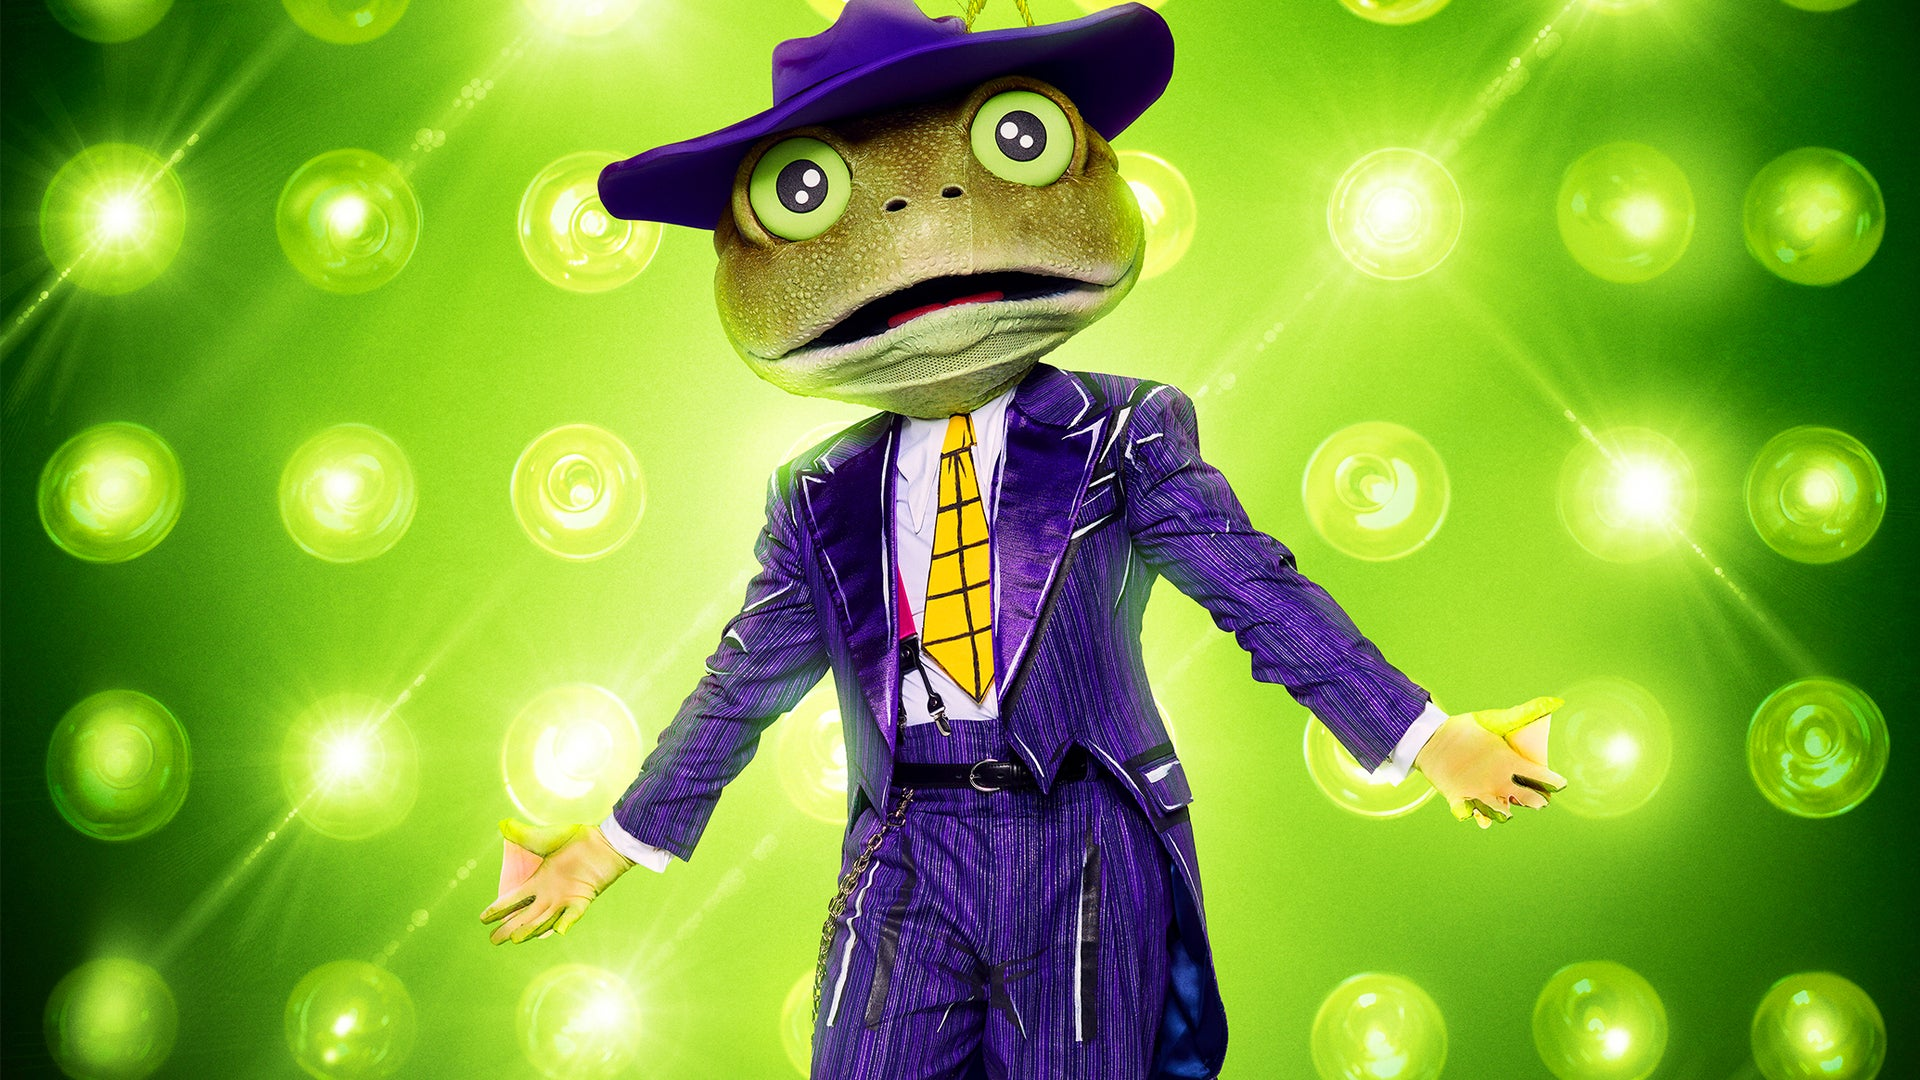 The Frog, The Masked Singer Season 3